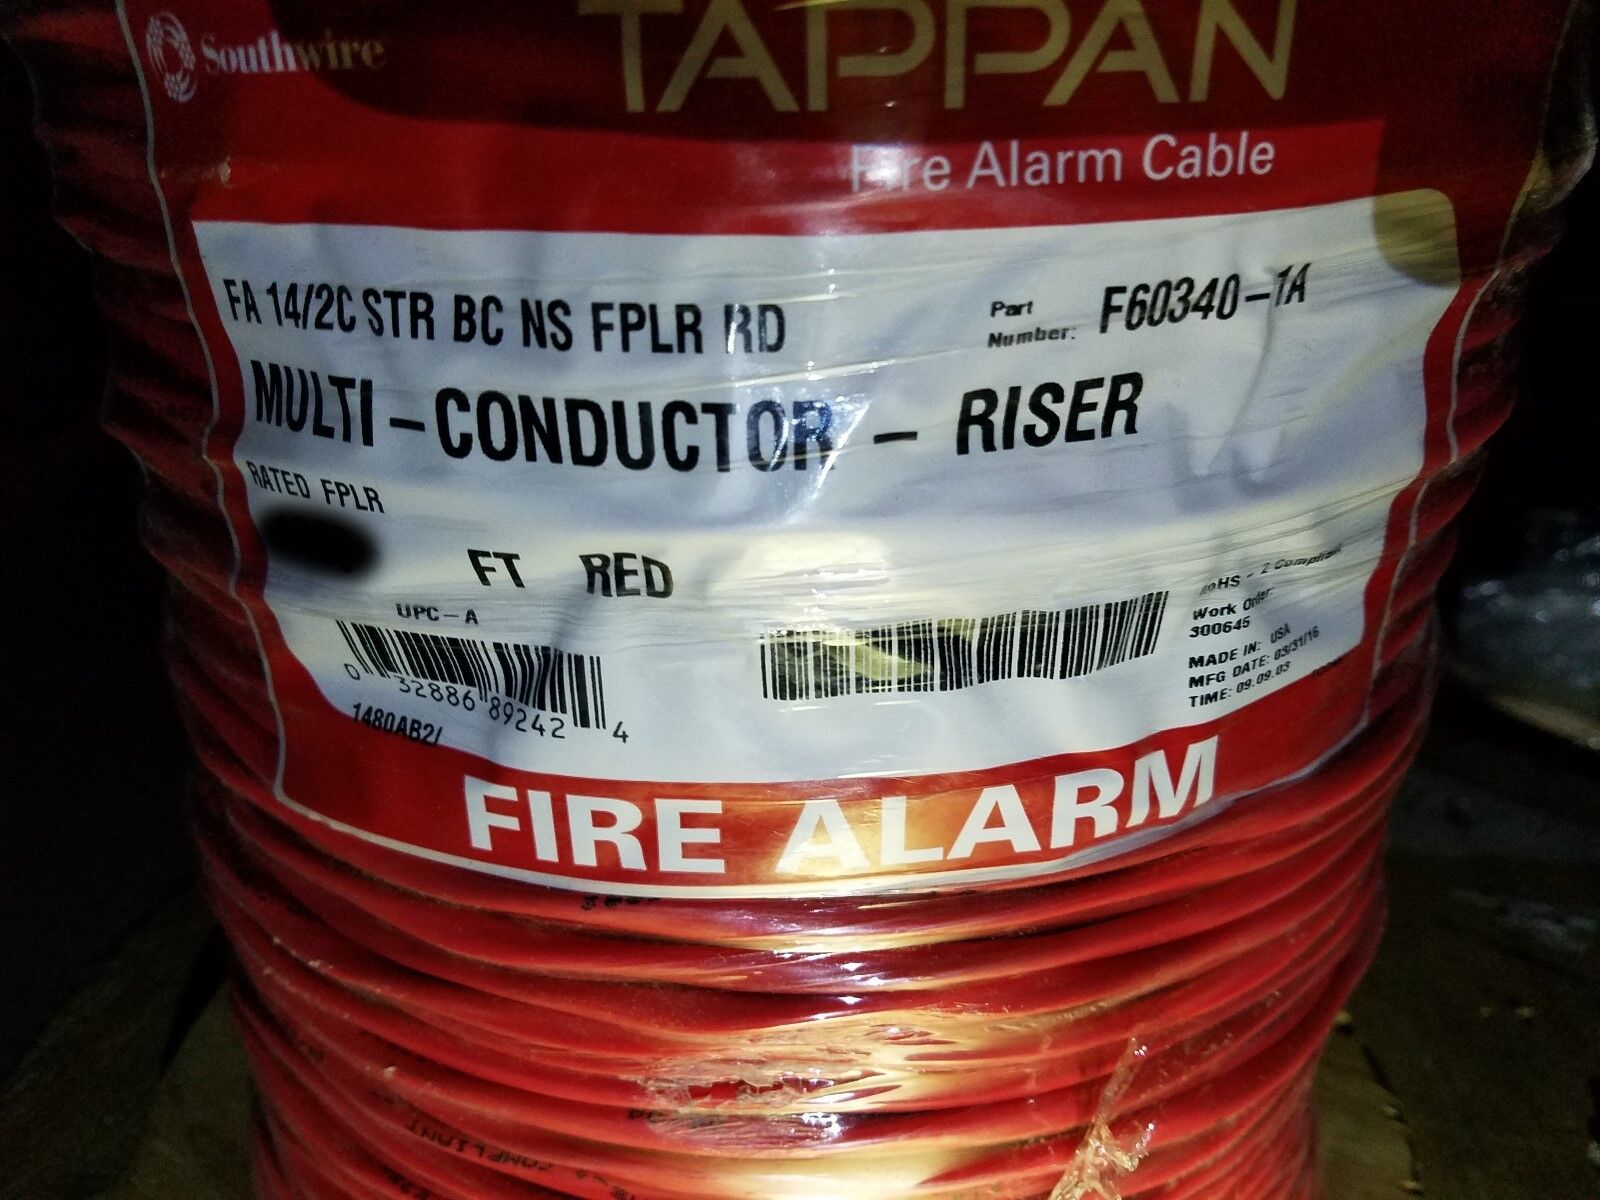 Southwire/tappan F60340 580132 14/2c Stranded Fire Alarm Cable ...